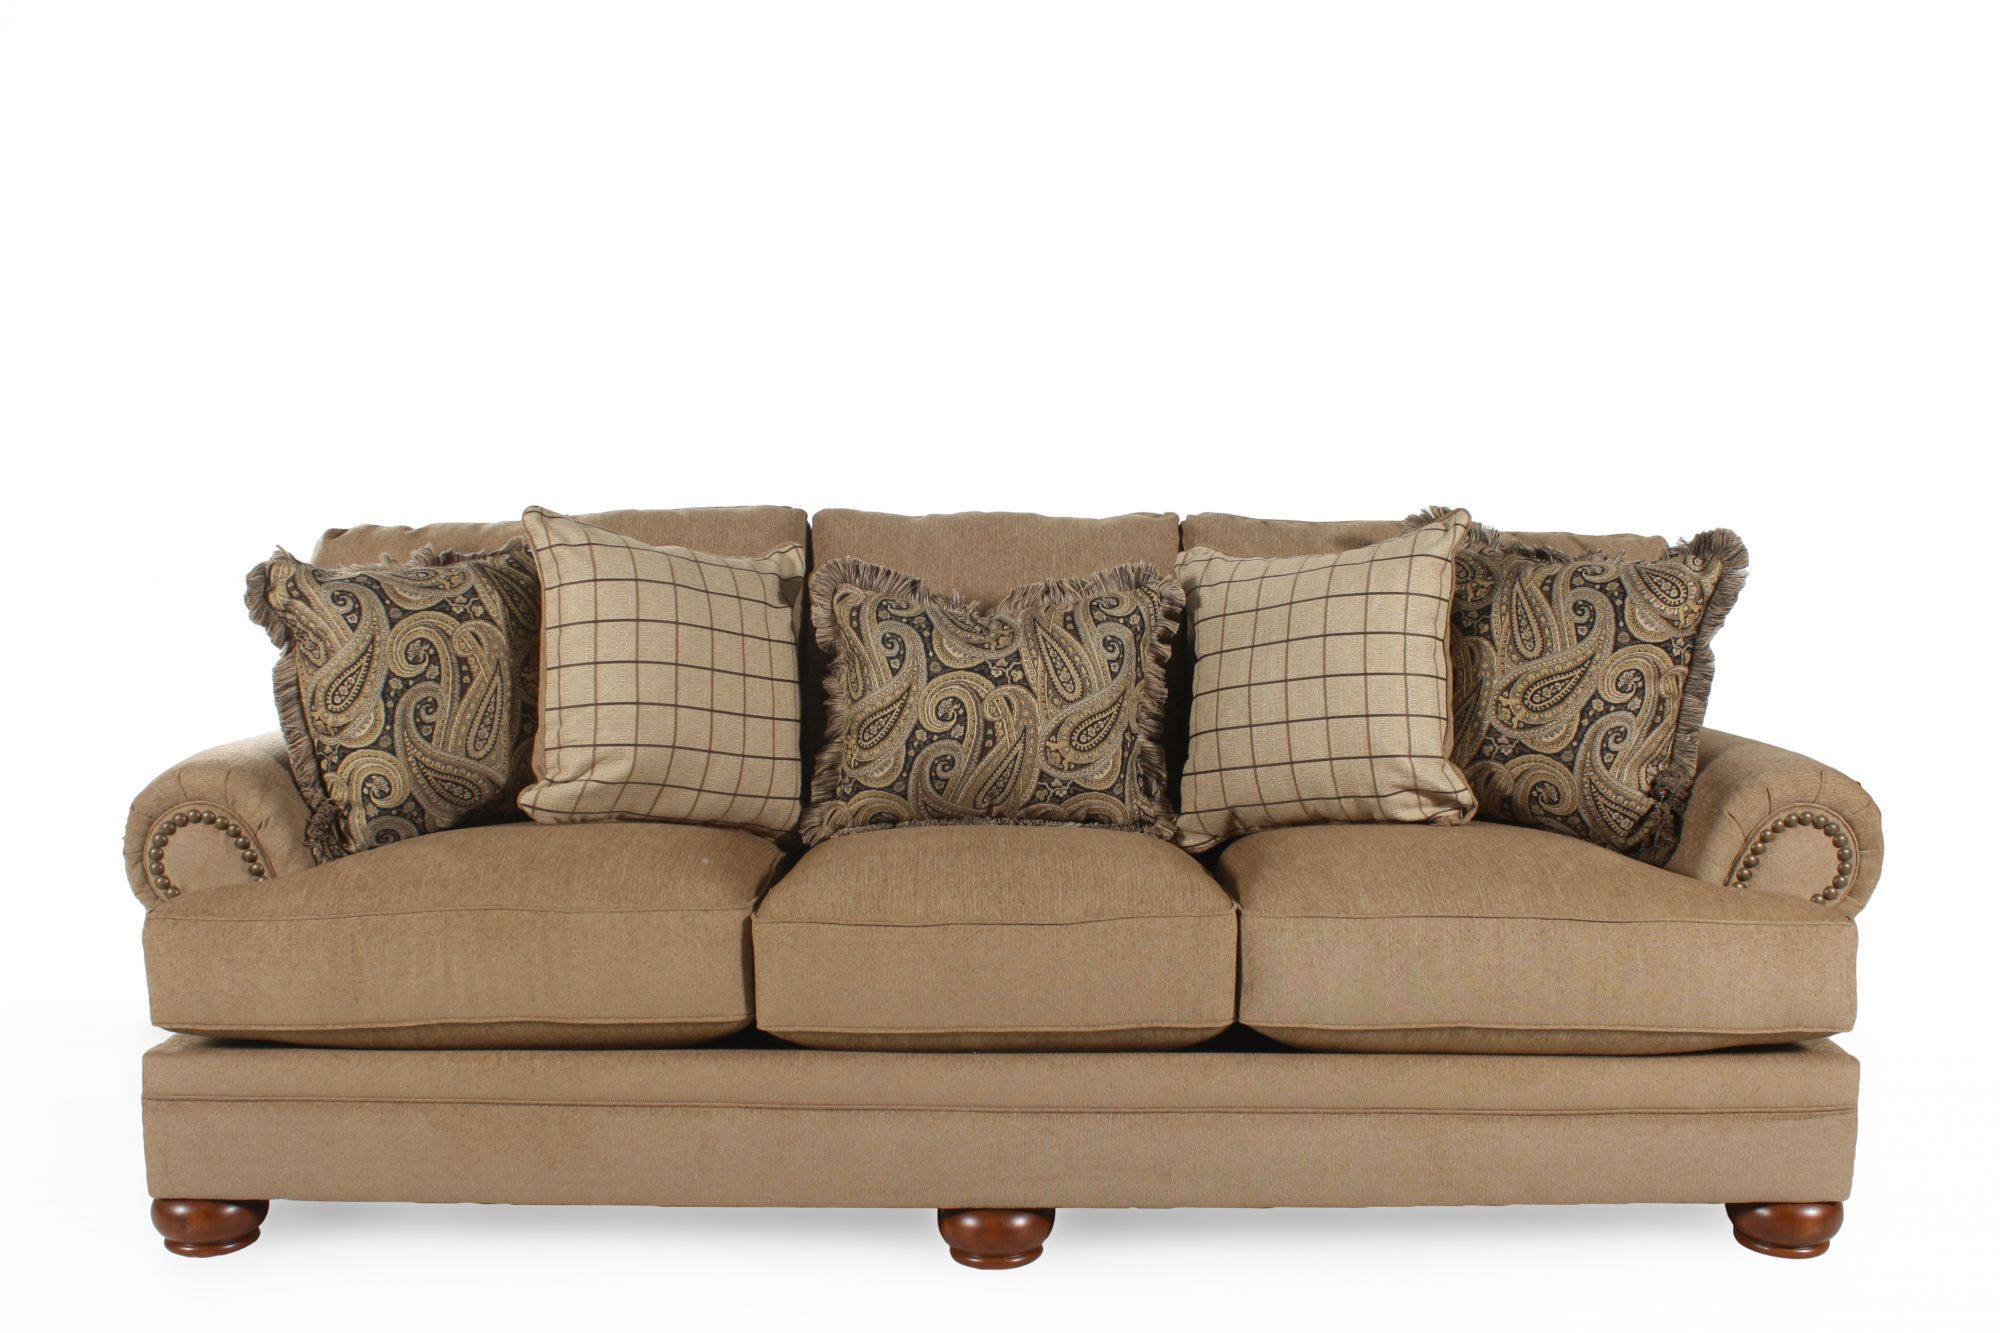 excellent high back sectional sofas decoration-Latest High Back Sectional sofas Décor